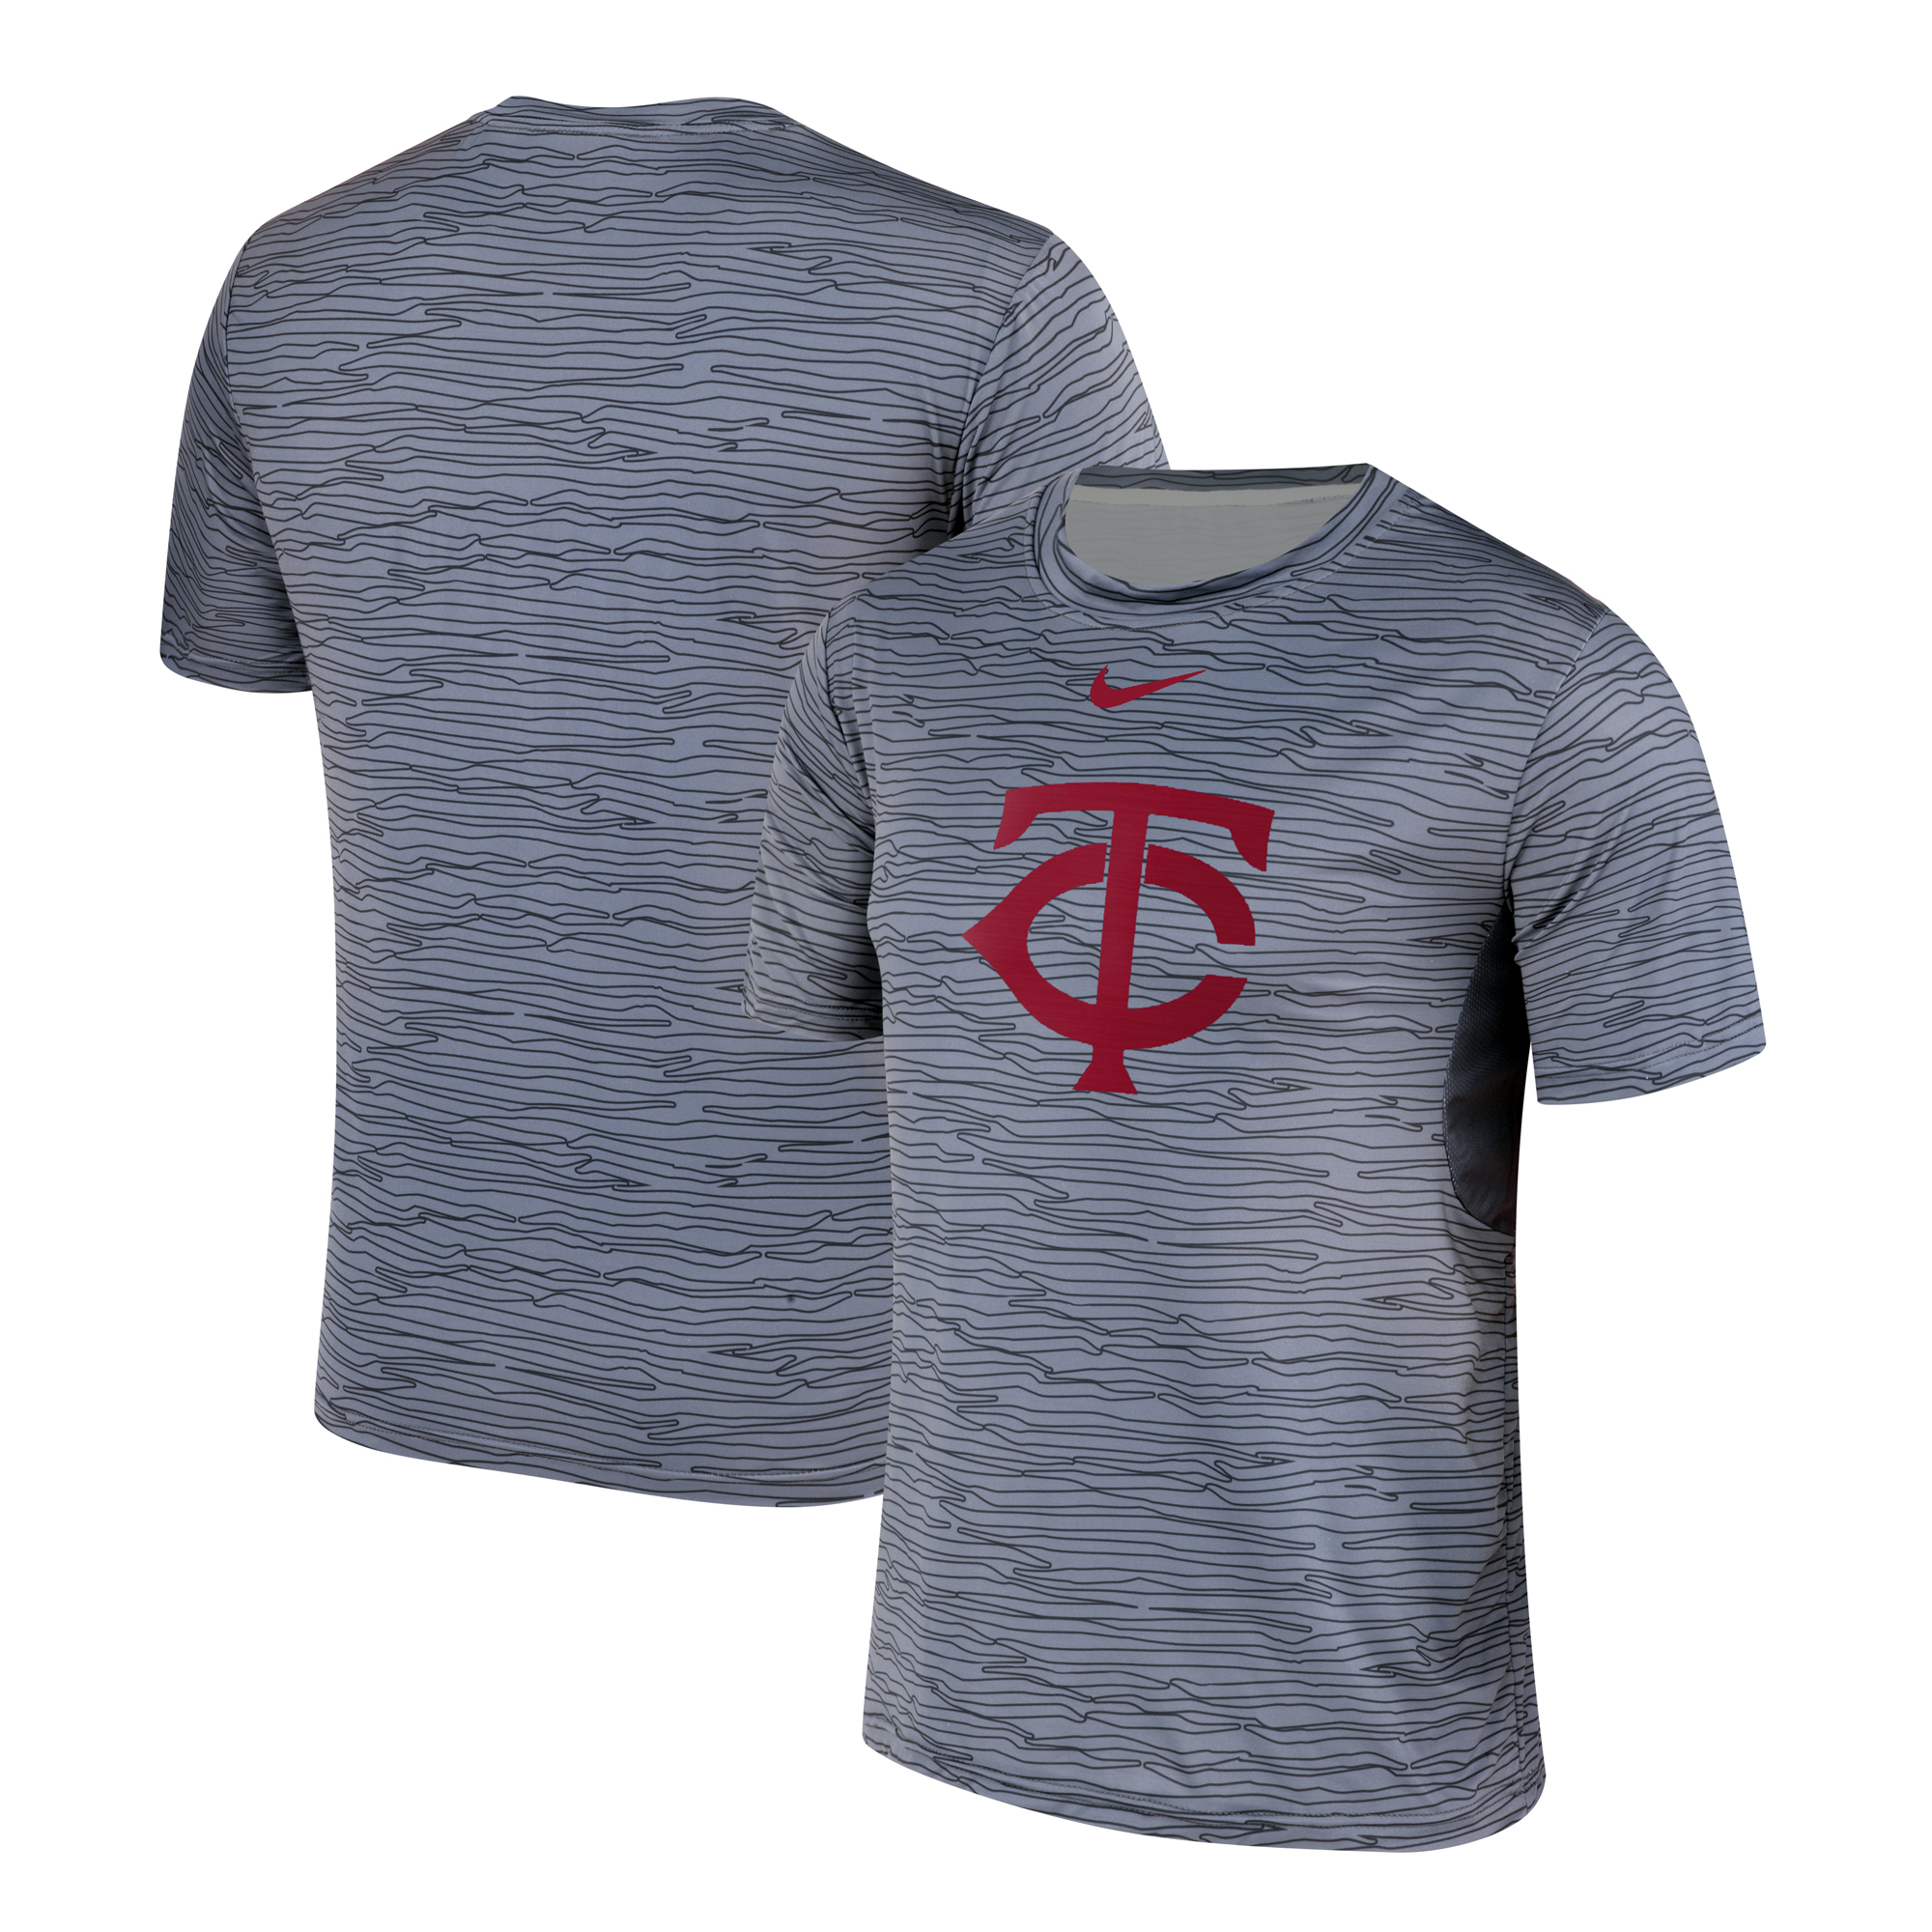 Nike Minnesota Twins Gray Black Striped Logo Performance T-Shirt